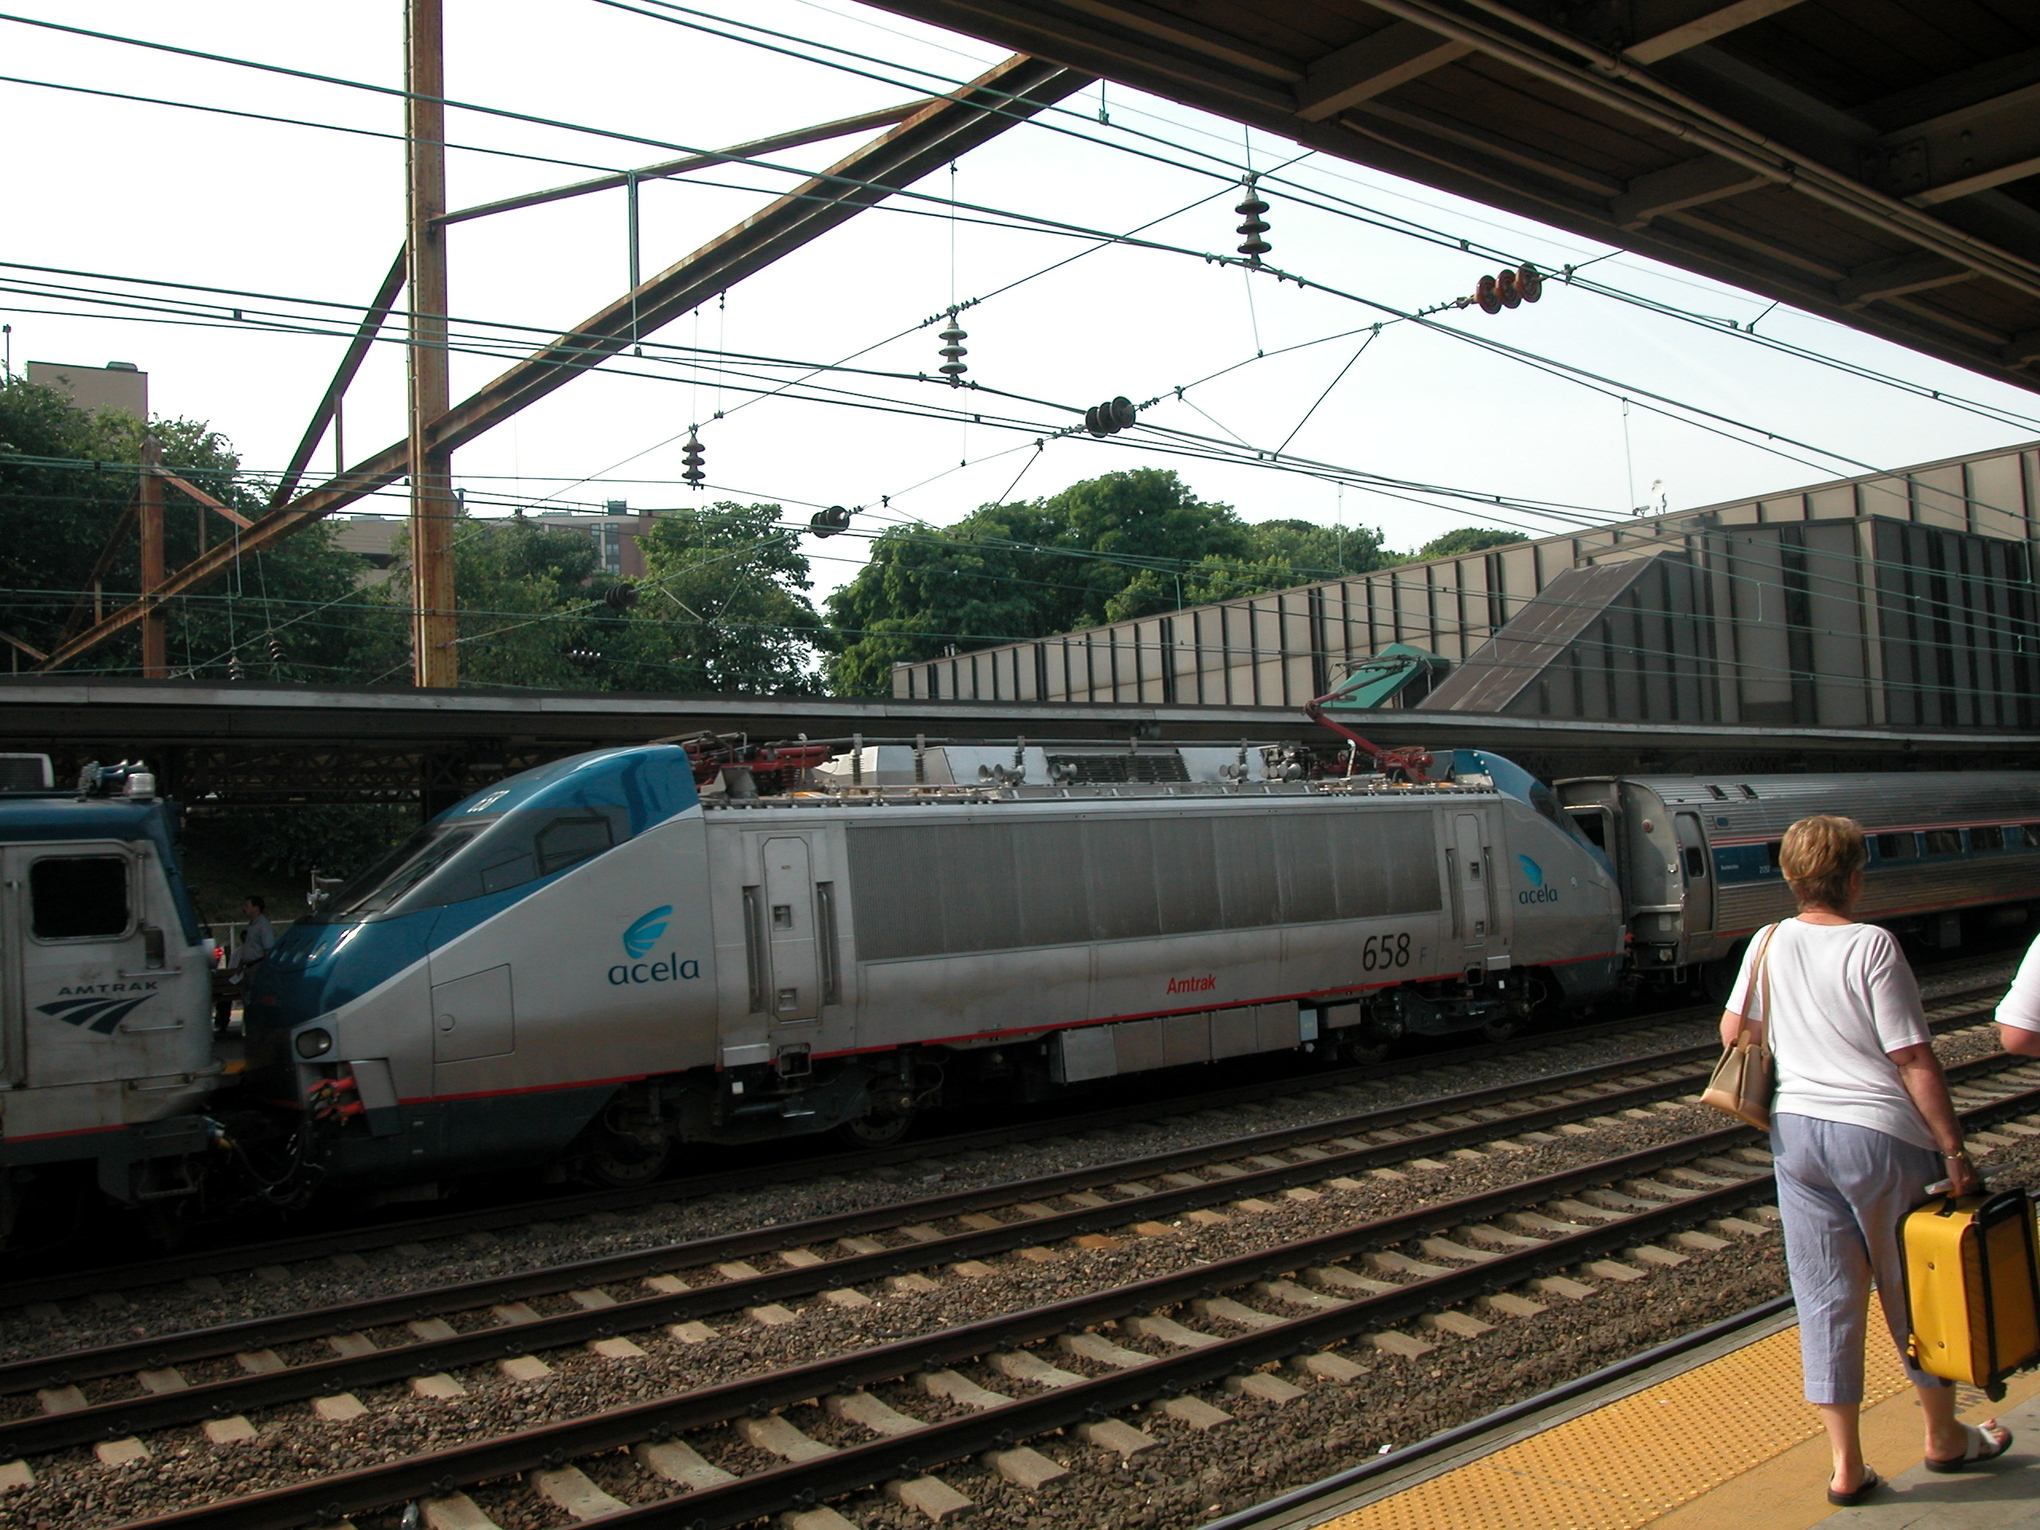 Amtrak's insane train boarding rules - Vox